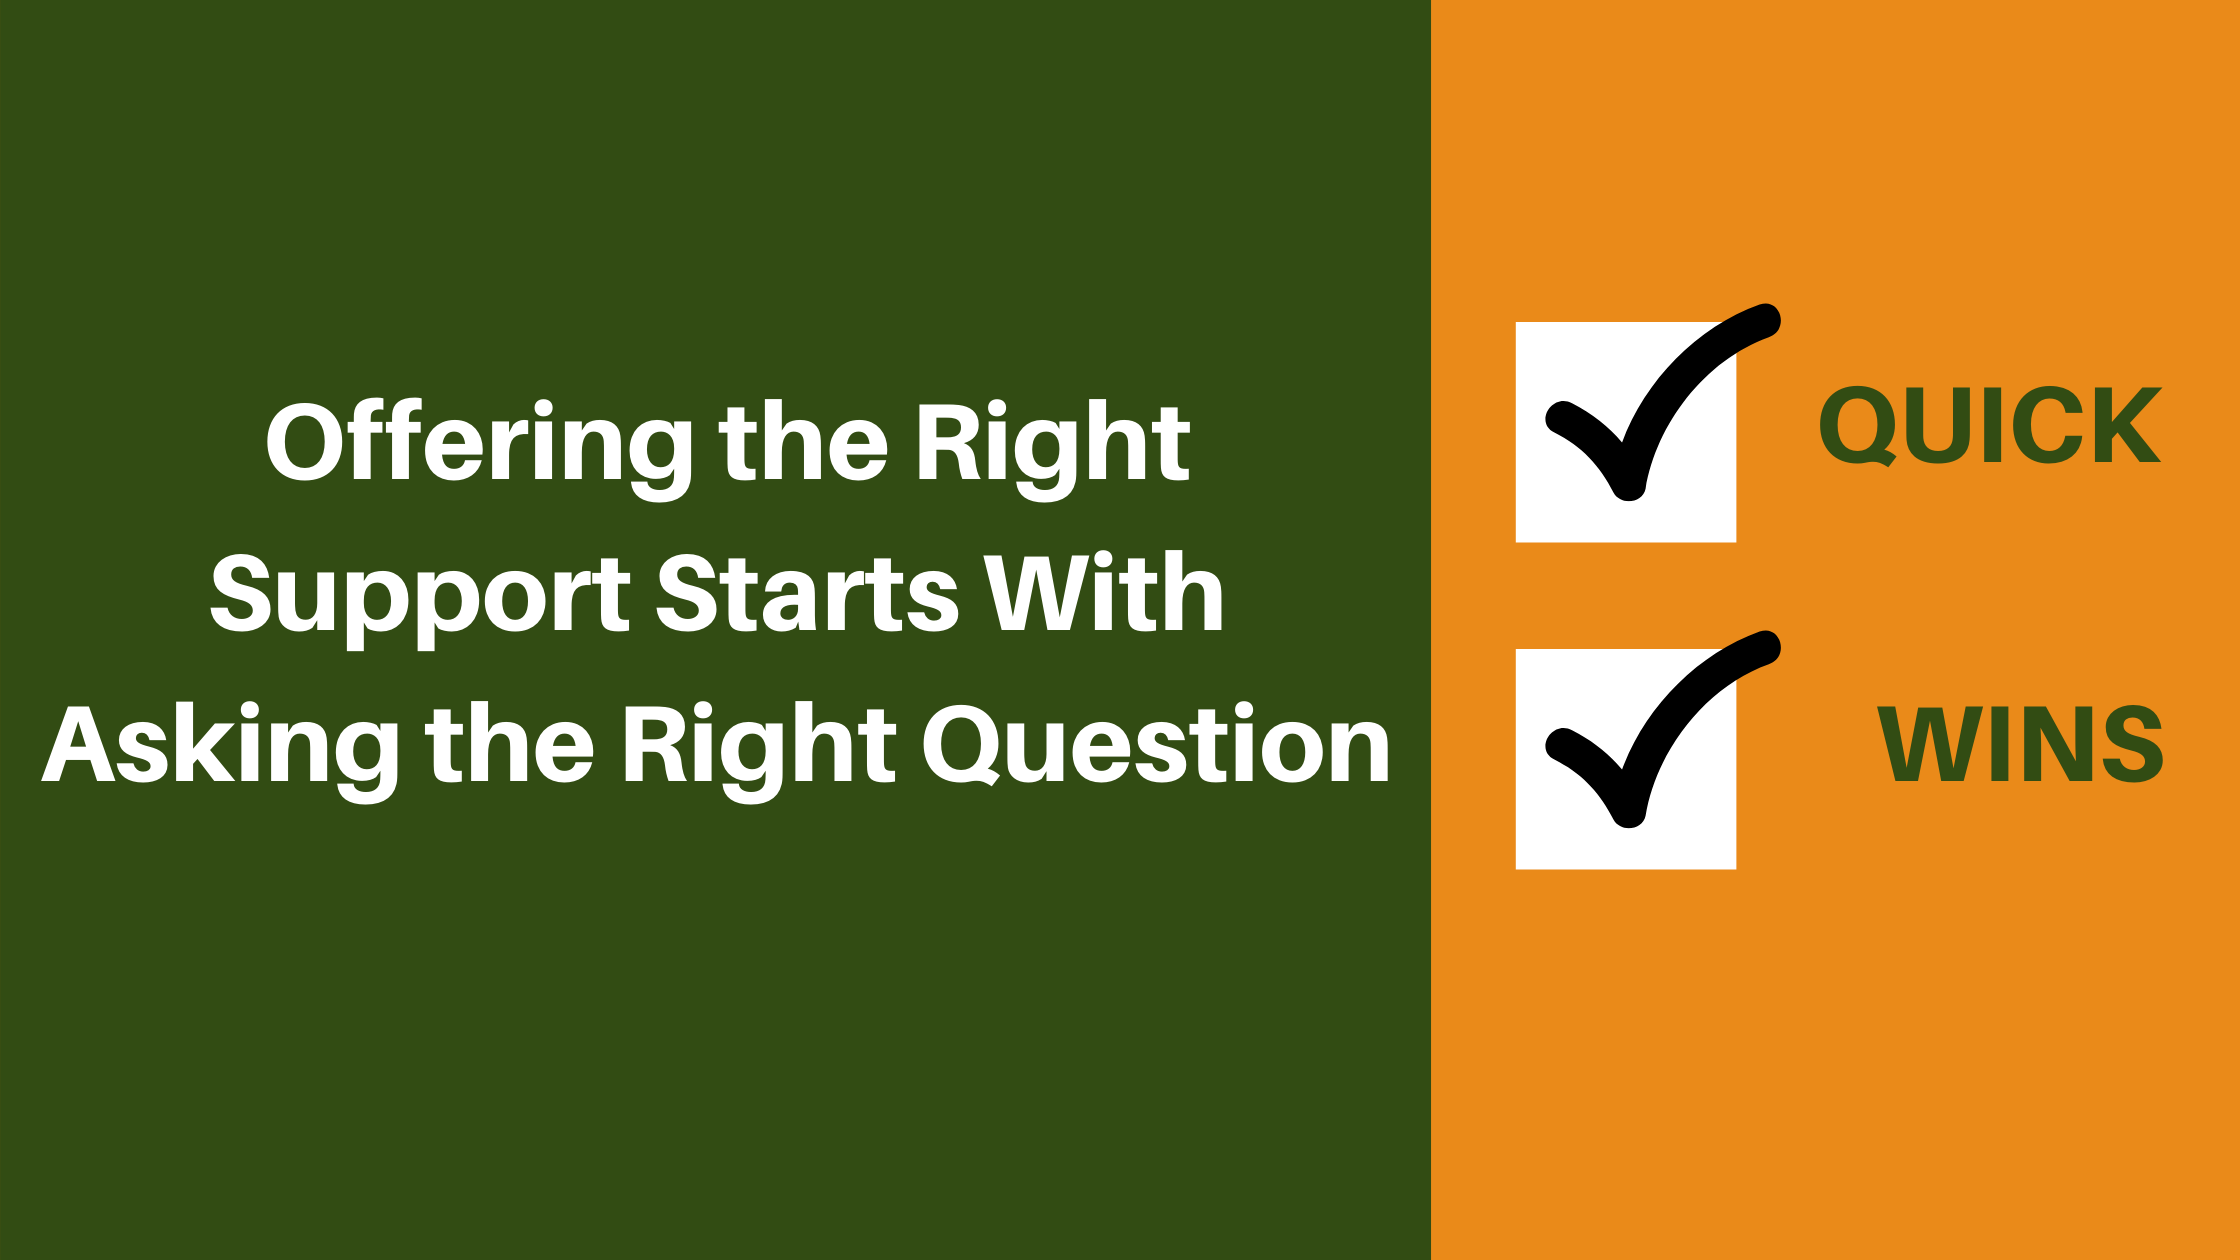 Image title: offering the right support starts with asking the right question